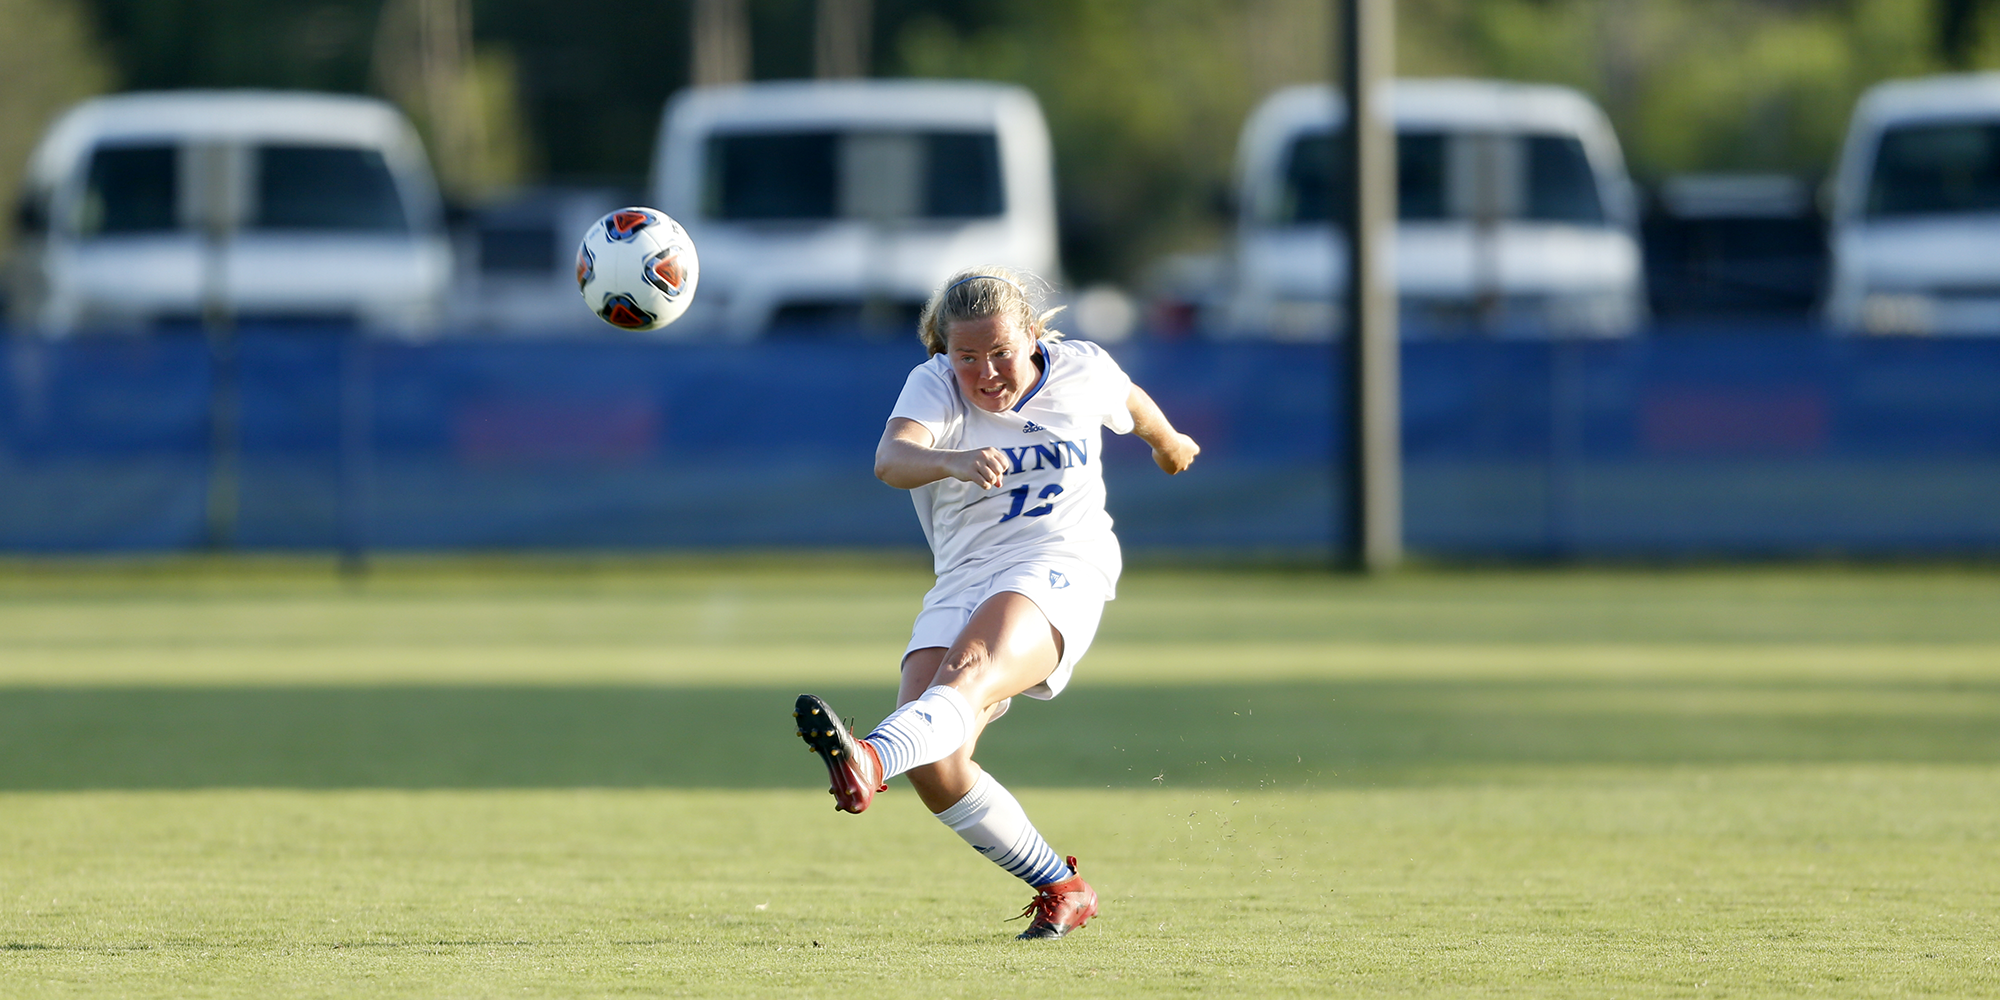 Weisberg's Floater Snaps Skid for Women's Soccer